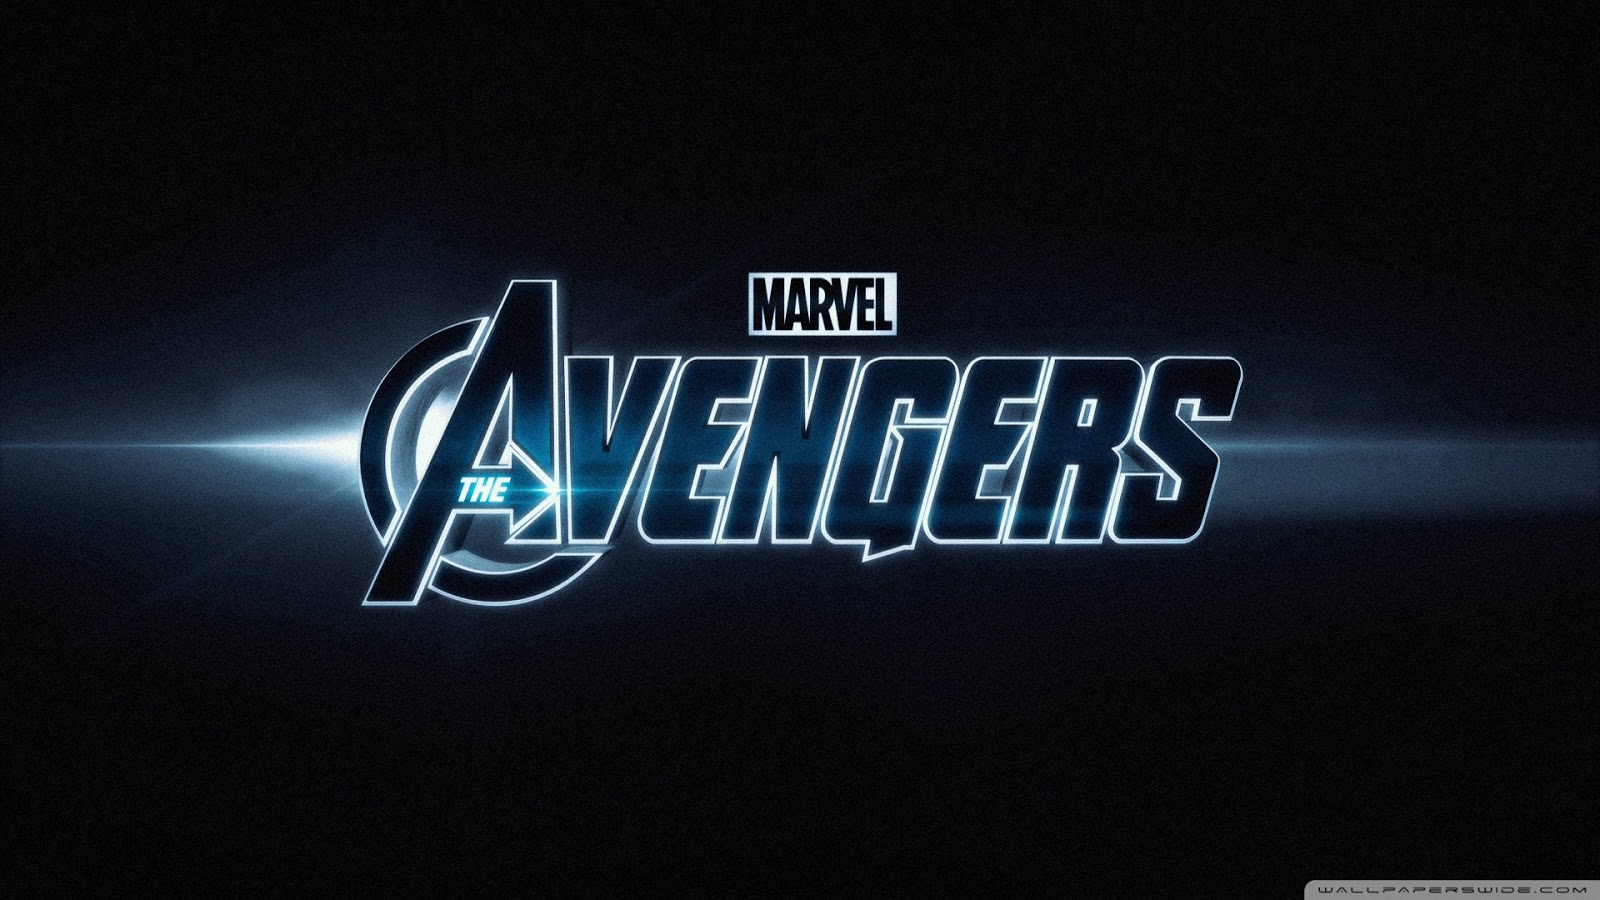 The Avengers Marvel 2012 Wallpaper